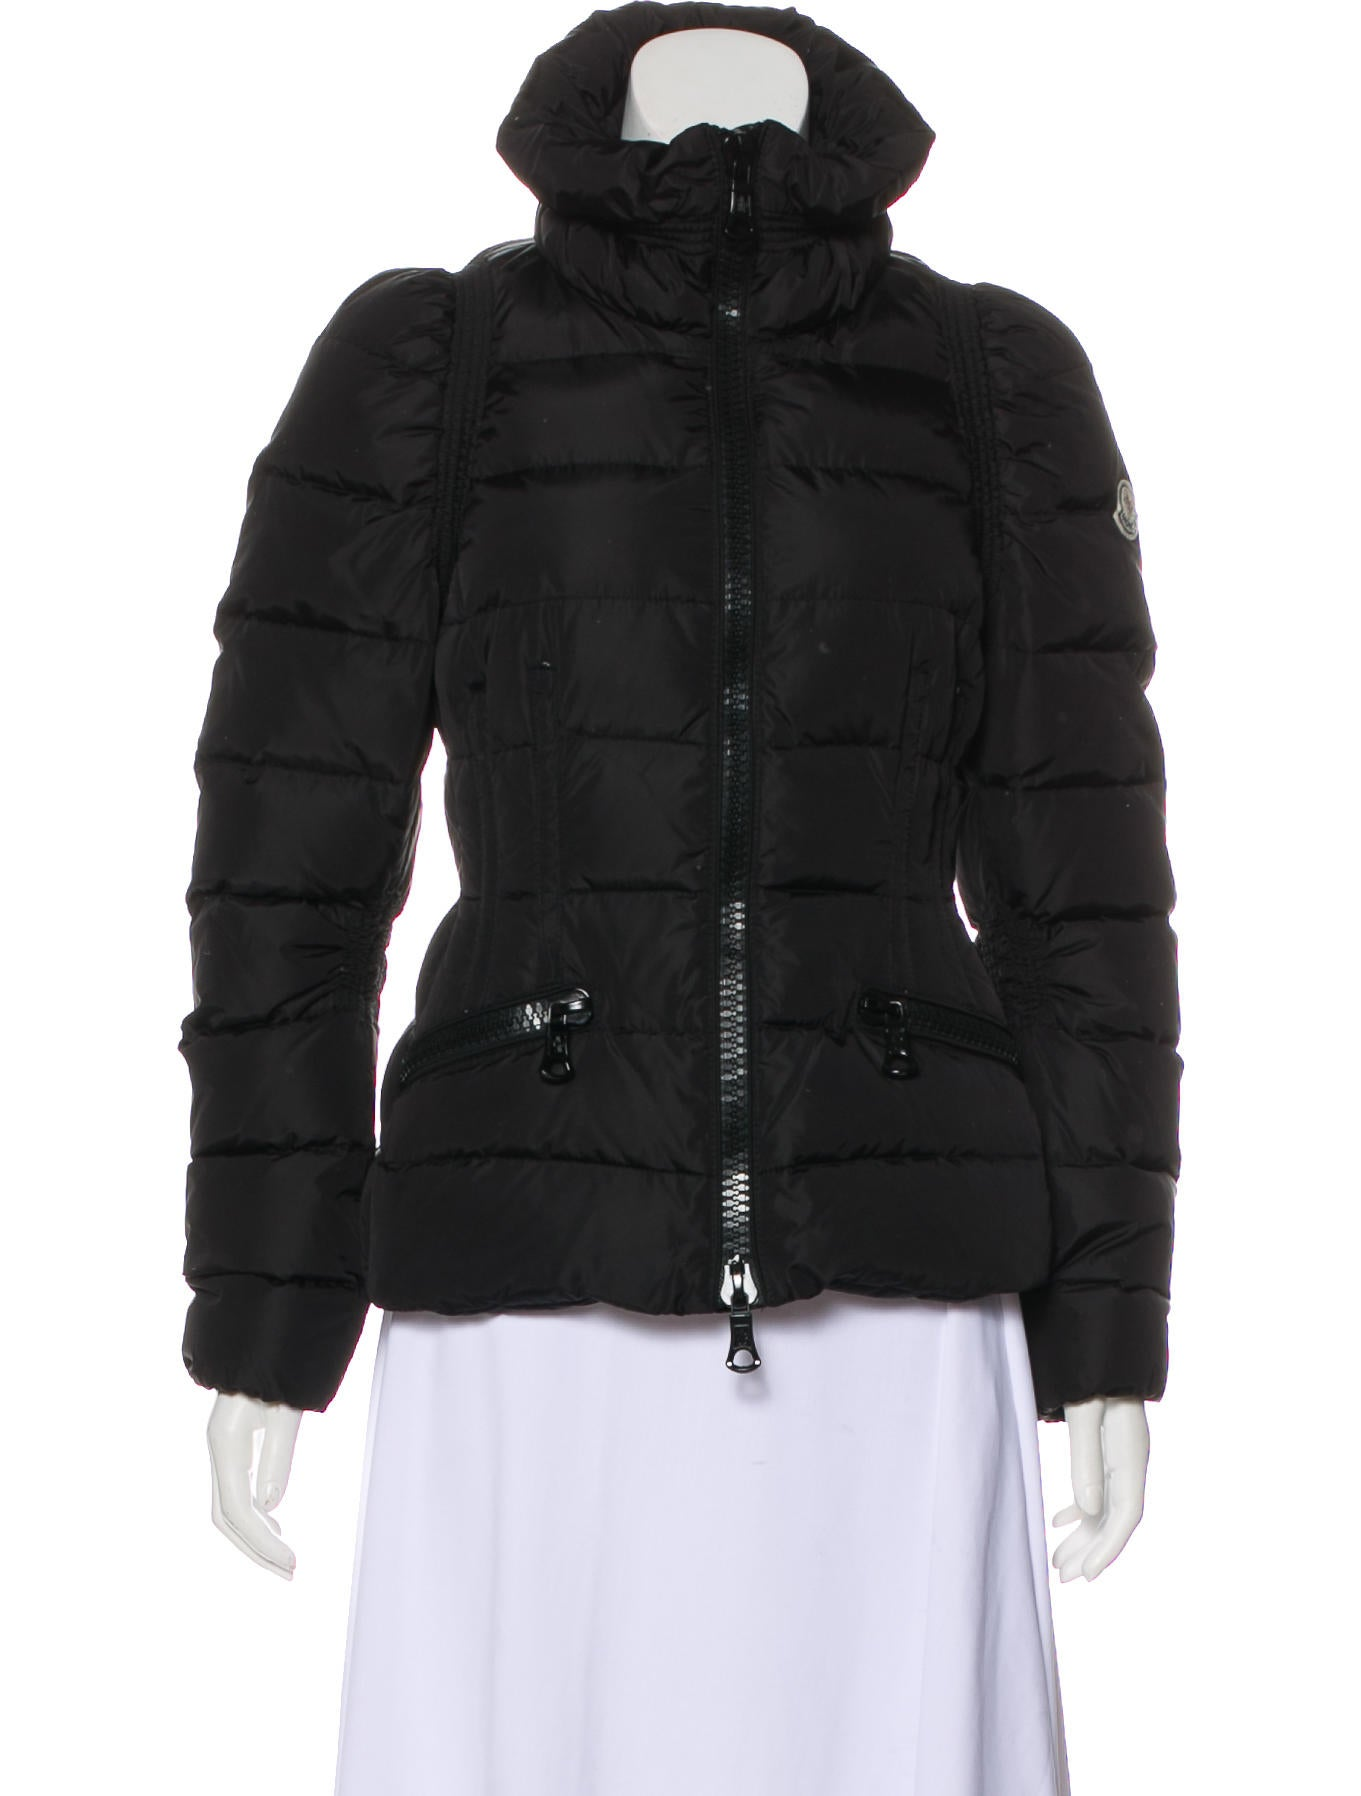 ee91d28e8db6 Moncler Quilted Down Coat - Clothing - MOC30611